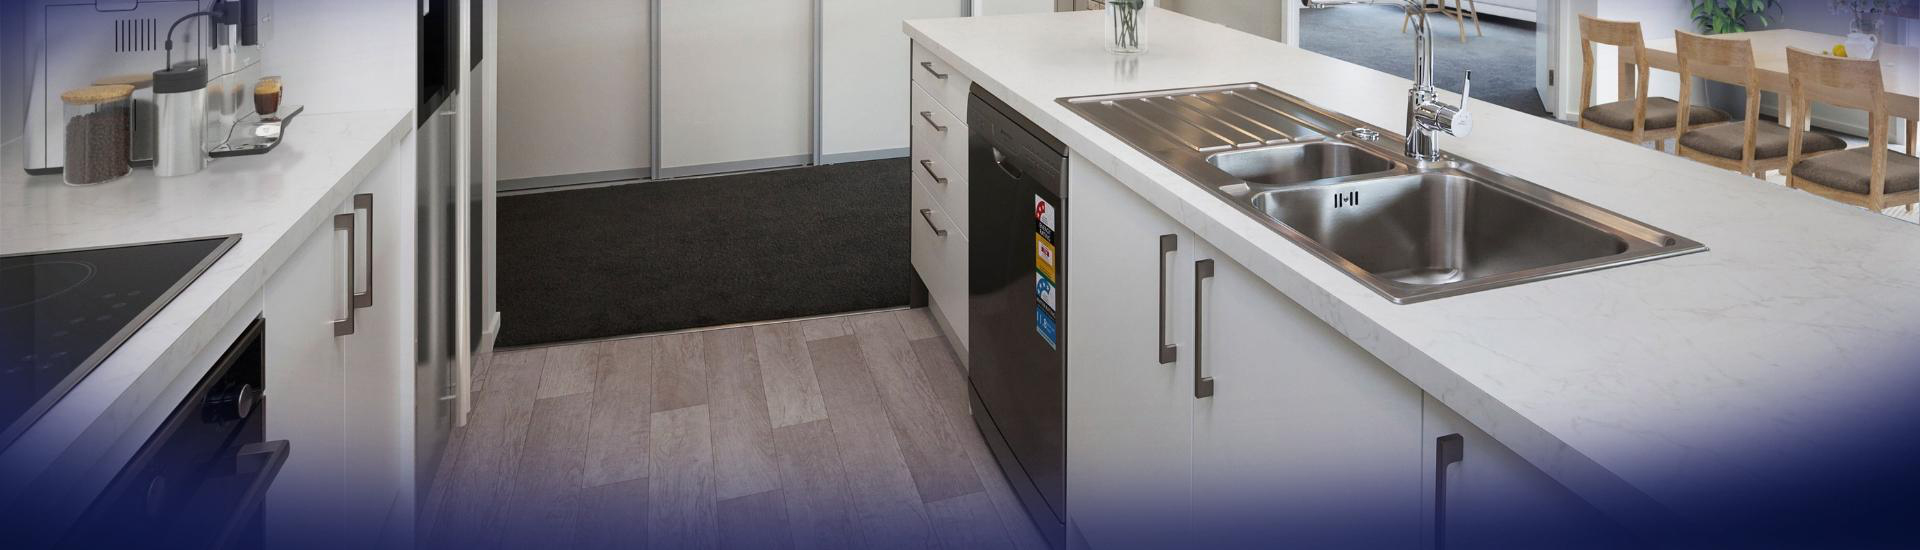 Maximising the Storage Space in Your New Home - Maximising the Storage Space in Your New Home